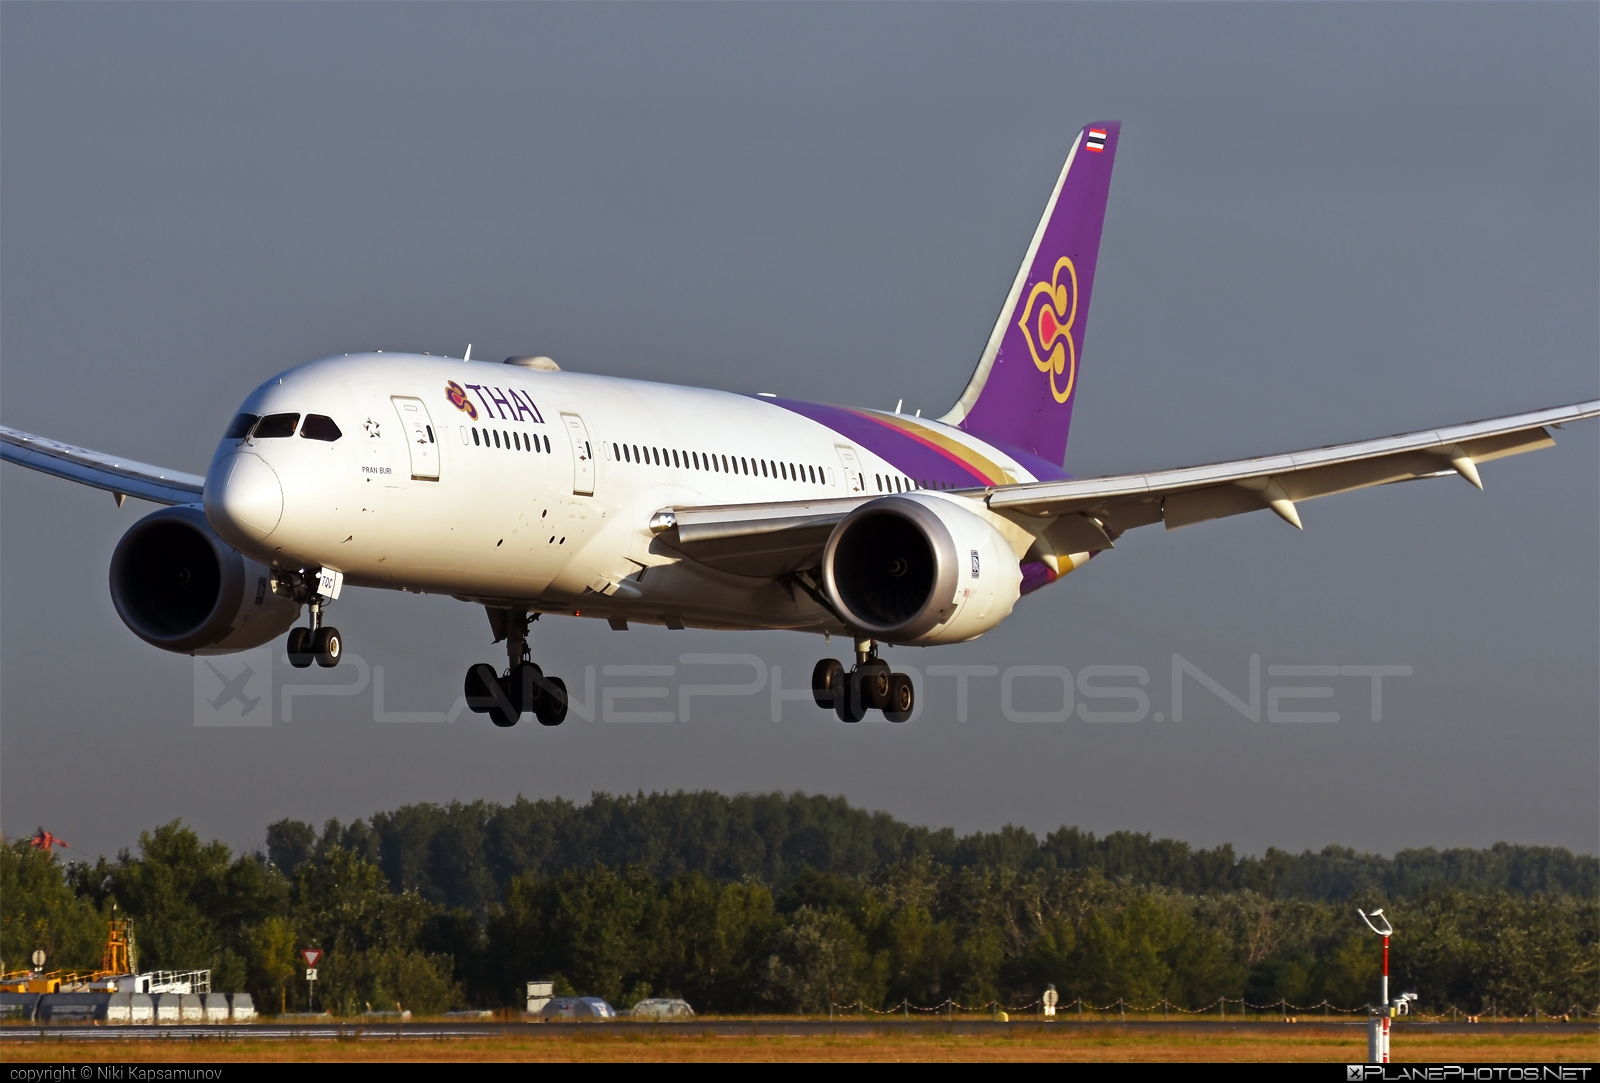 Boeing 787-8 Dreamliner - HS-TQC operated by Thai Airways #b787 #boeing #boeing787 #dreamliner #thaiairways